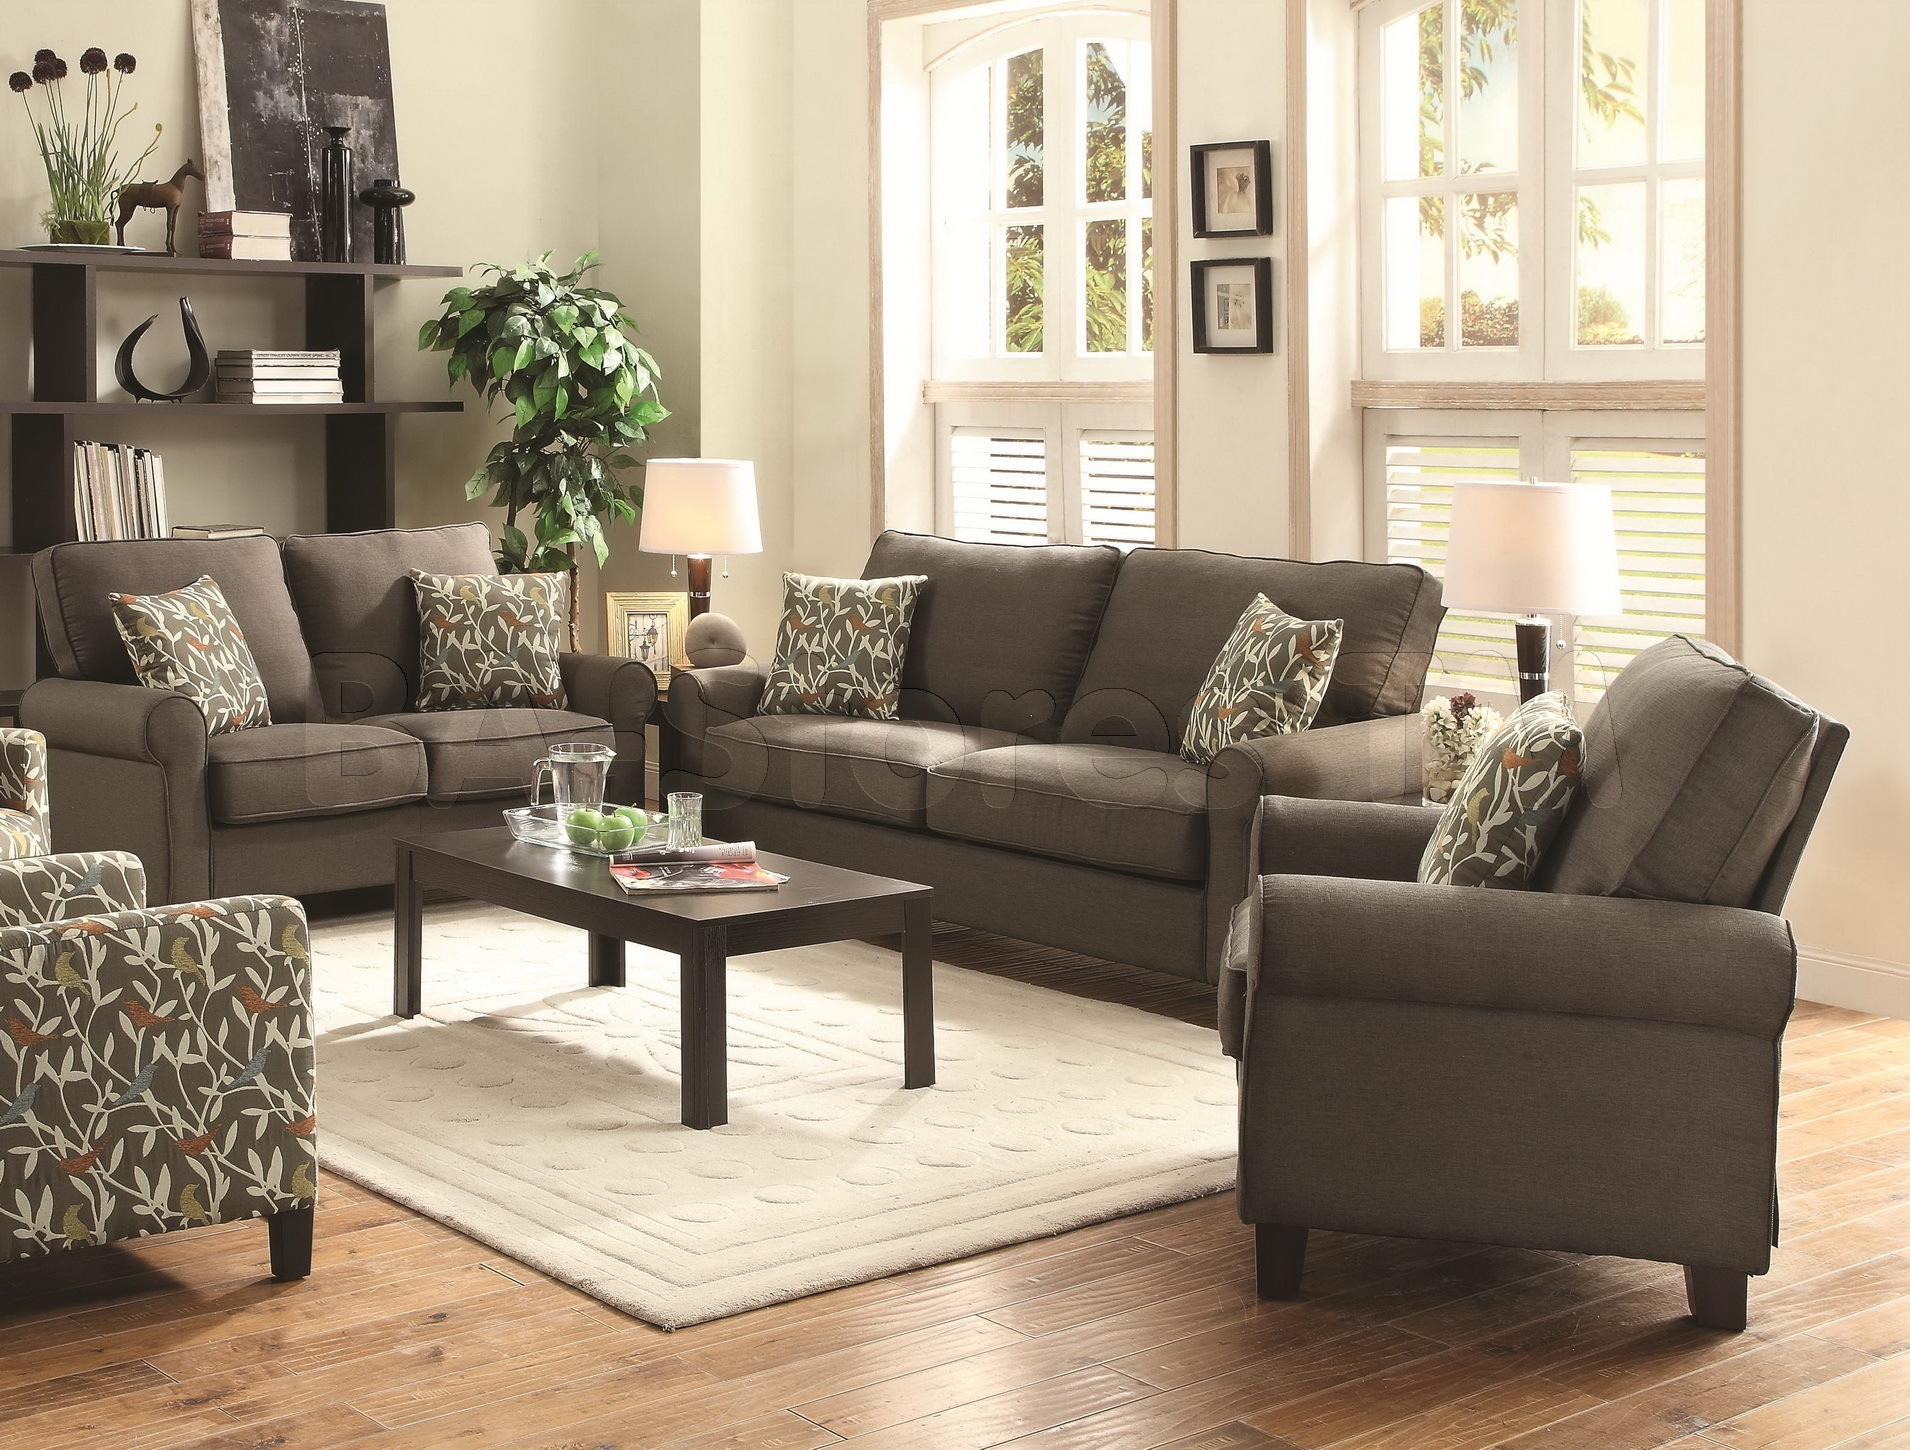 Sofa Loveseat And Chair Set Best Sofas Ideas Sofascouch Intended For Sofa Loveseat And Chair Set (Image 12 of 15)